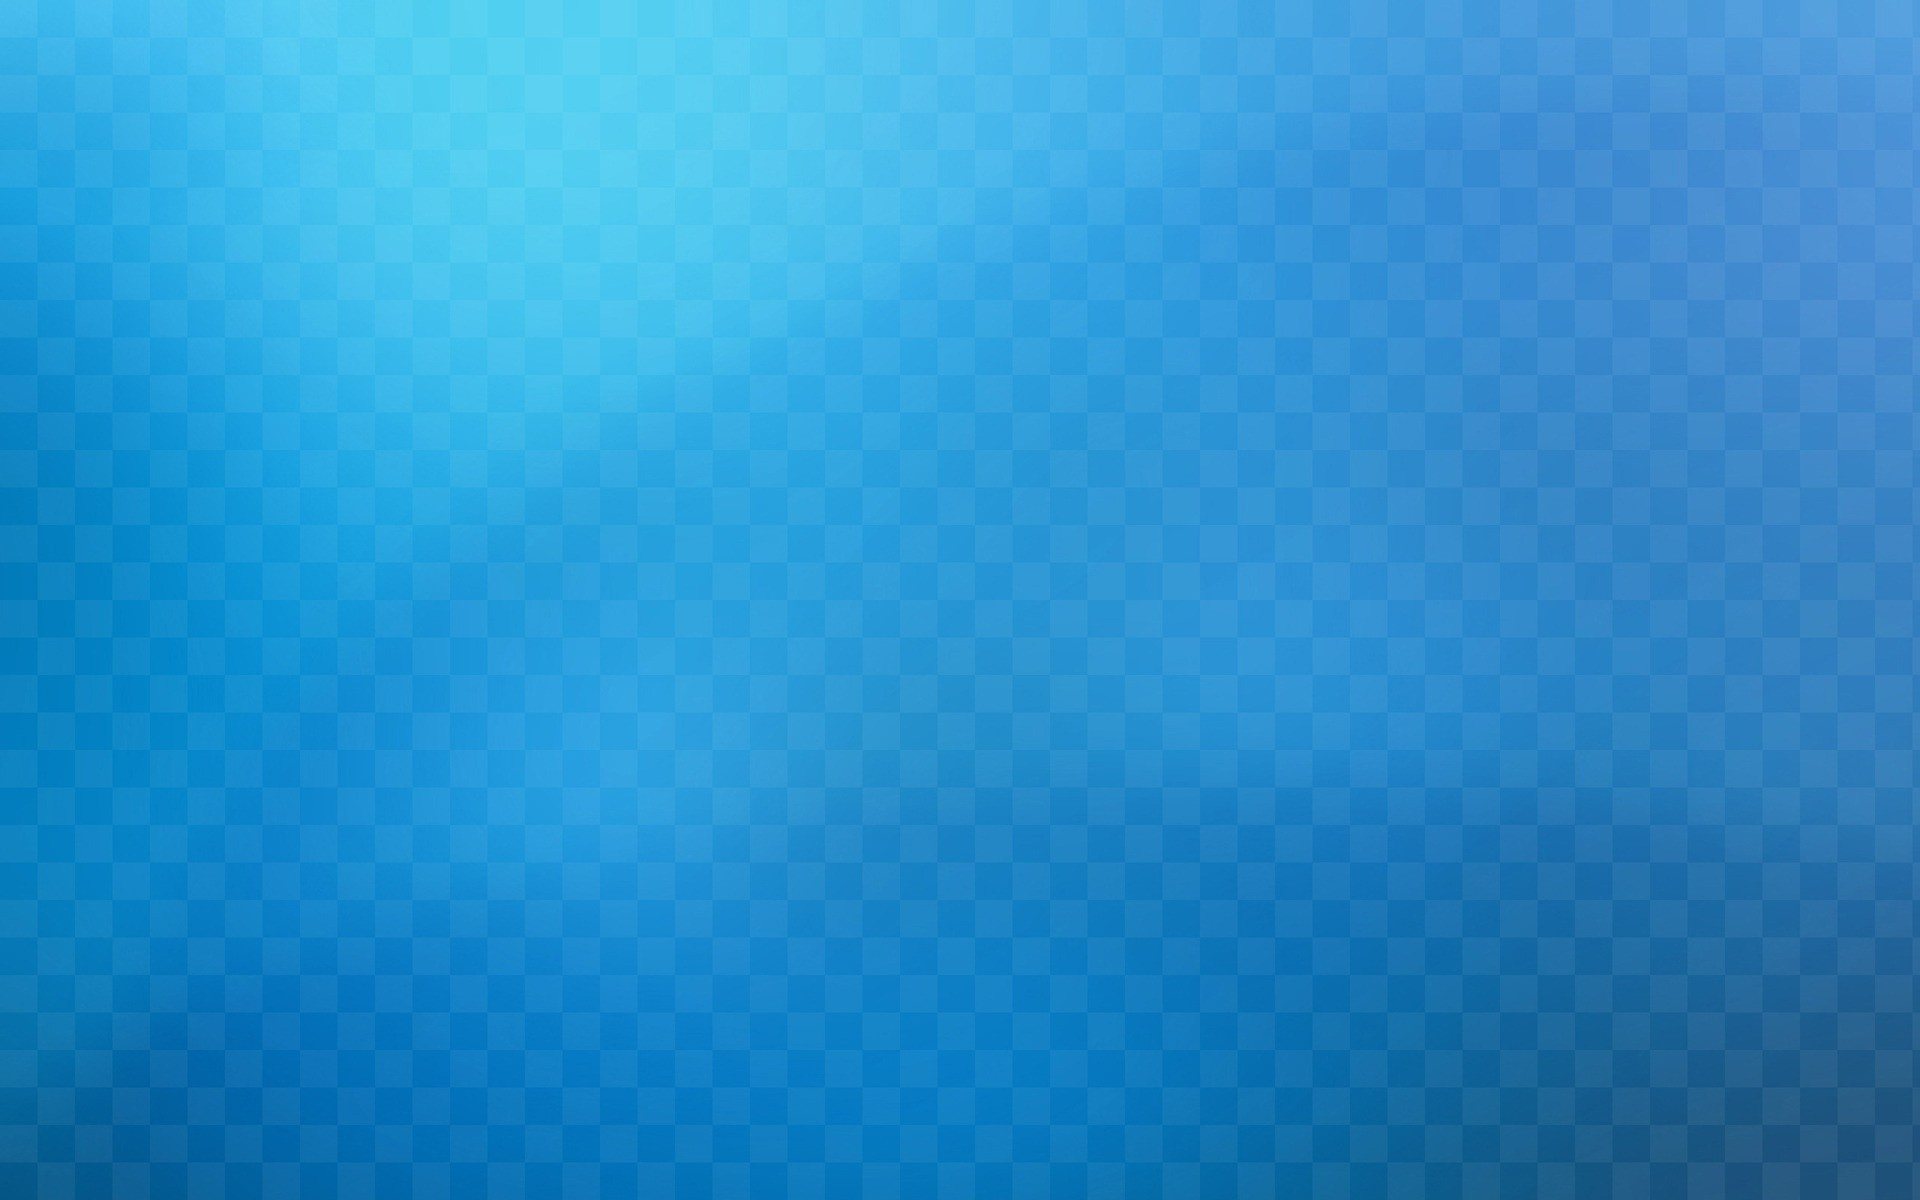 Light Blue Texture Background Wallpaper Texture Blue Background 1920x1200